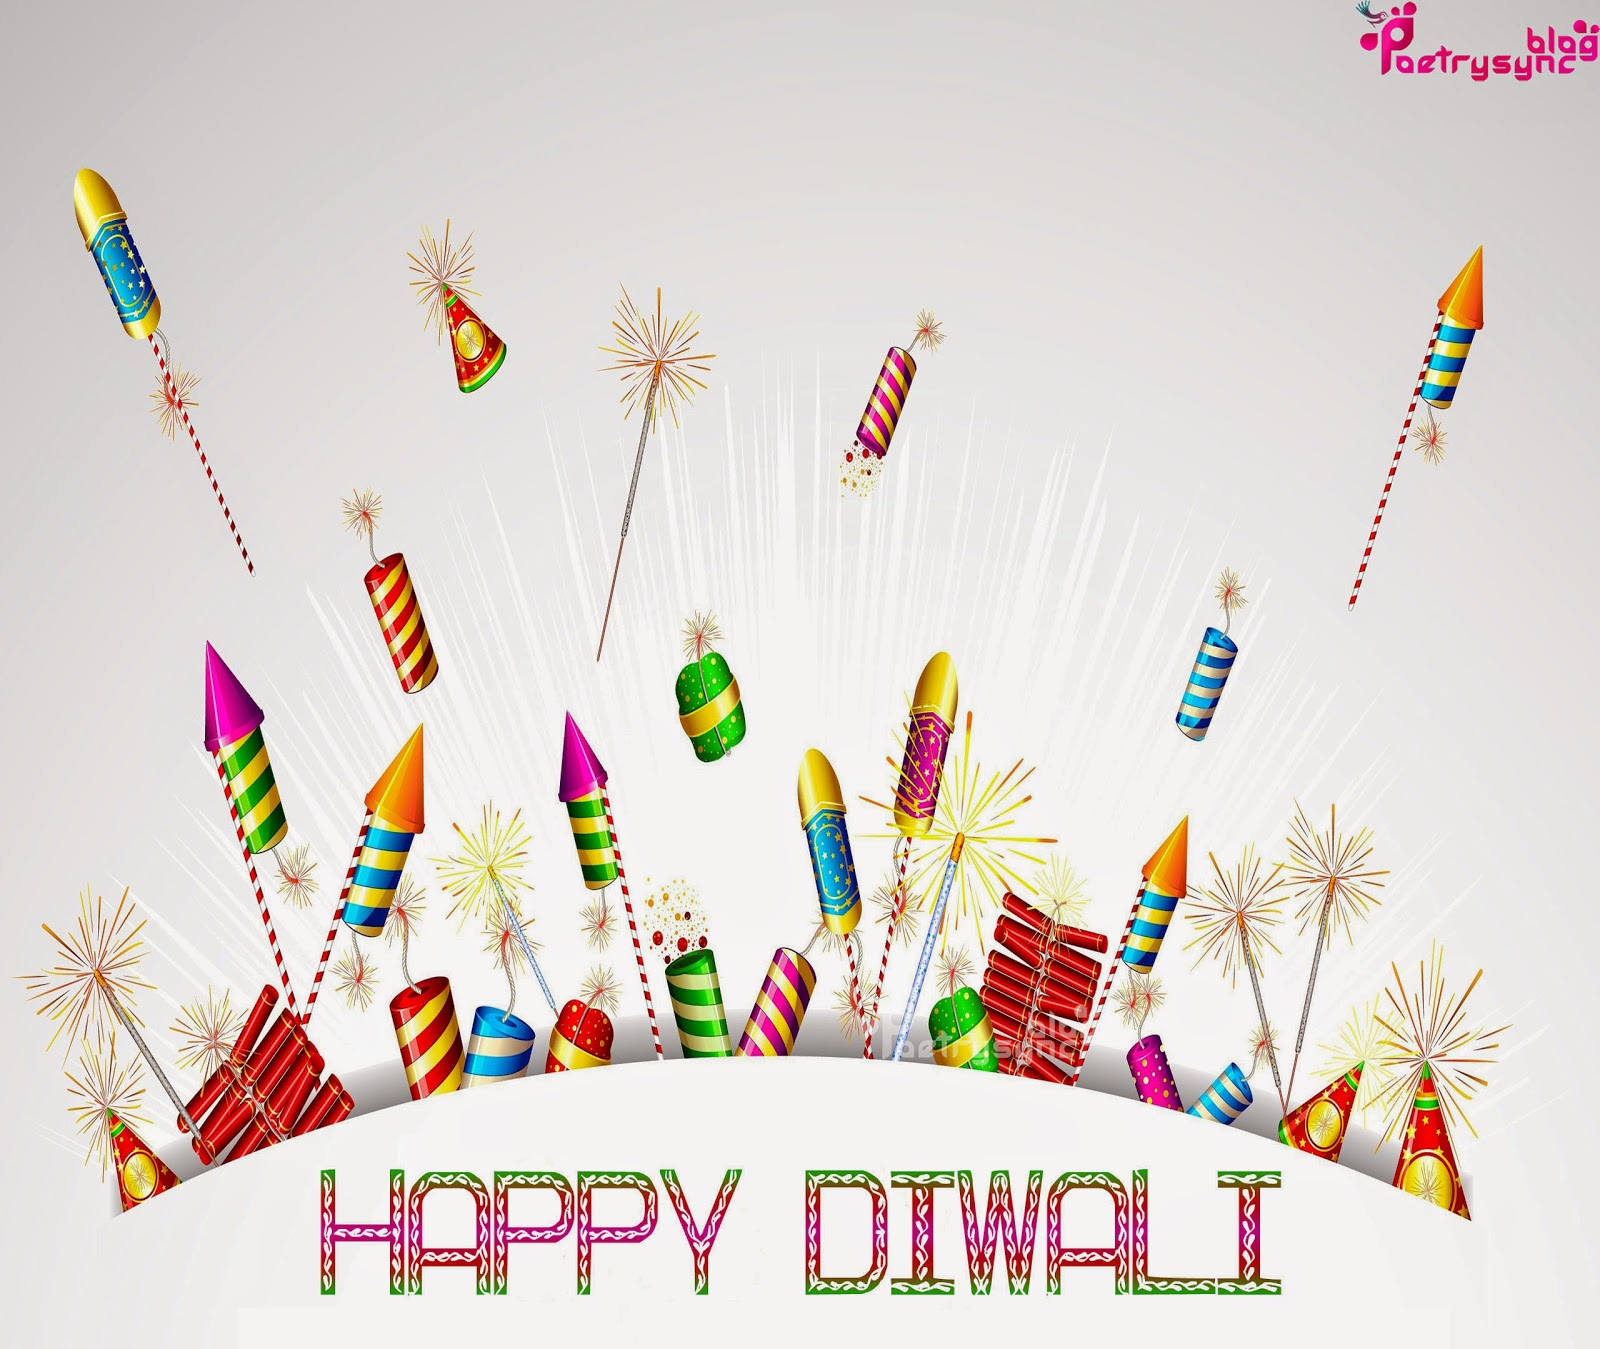 Happy diwali wishes wallpapers with diwali greetings quotes happy diwali wishes wallpapers with diwali greetings quotes kristyandbryce Gallery